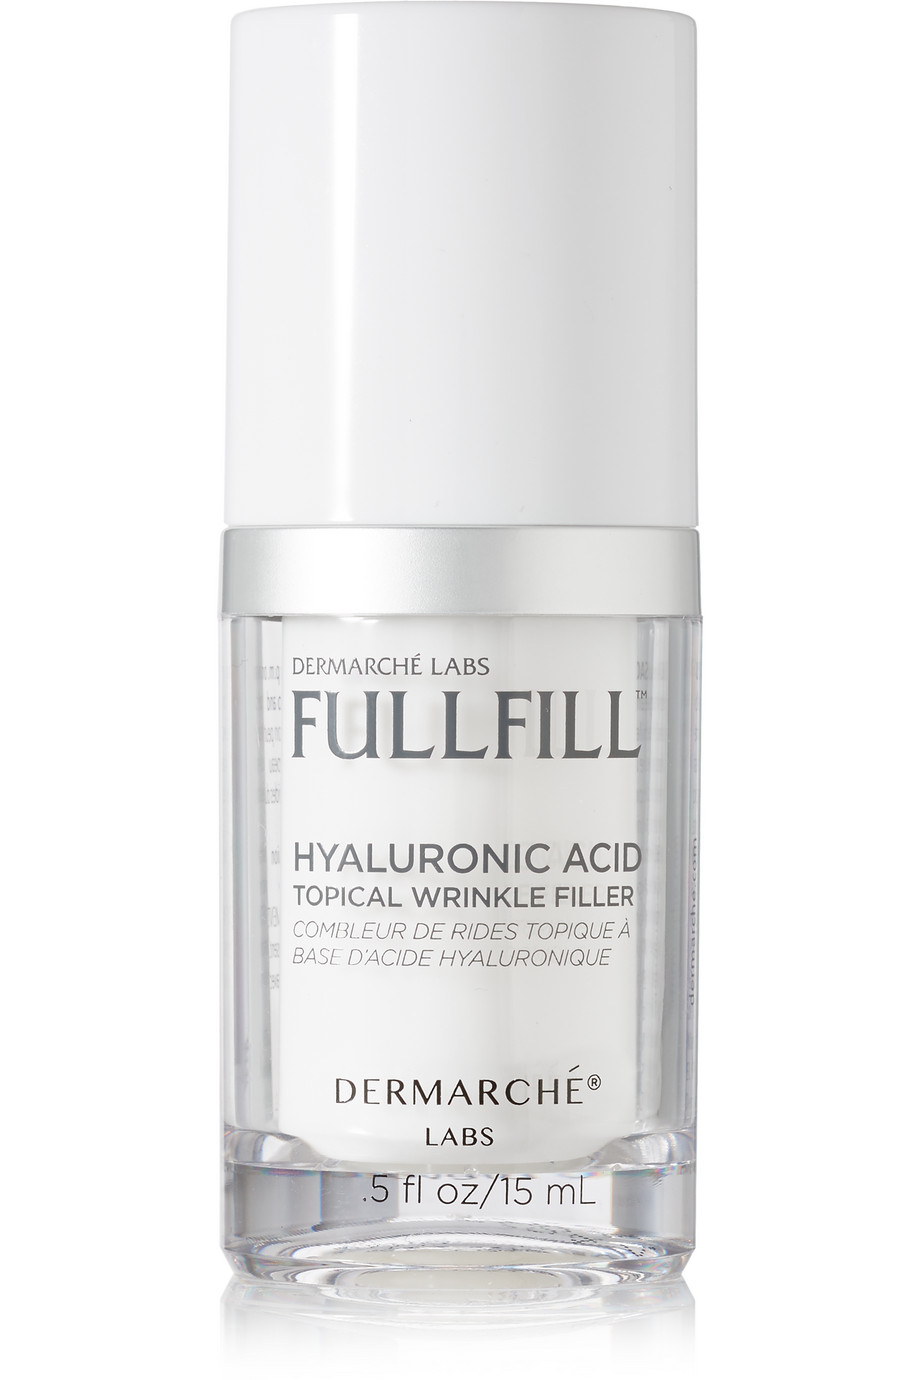 Fullfill Hyaluronic Acid Topical Wrinkle Filler, 15ml